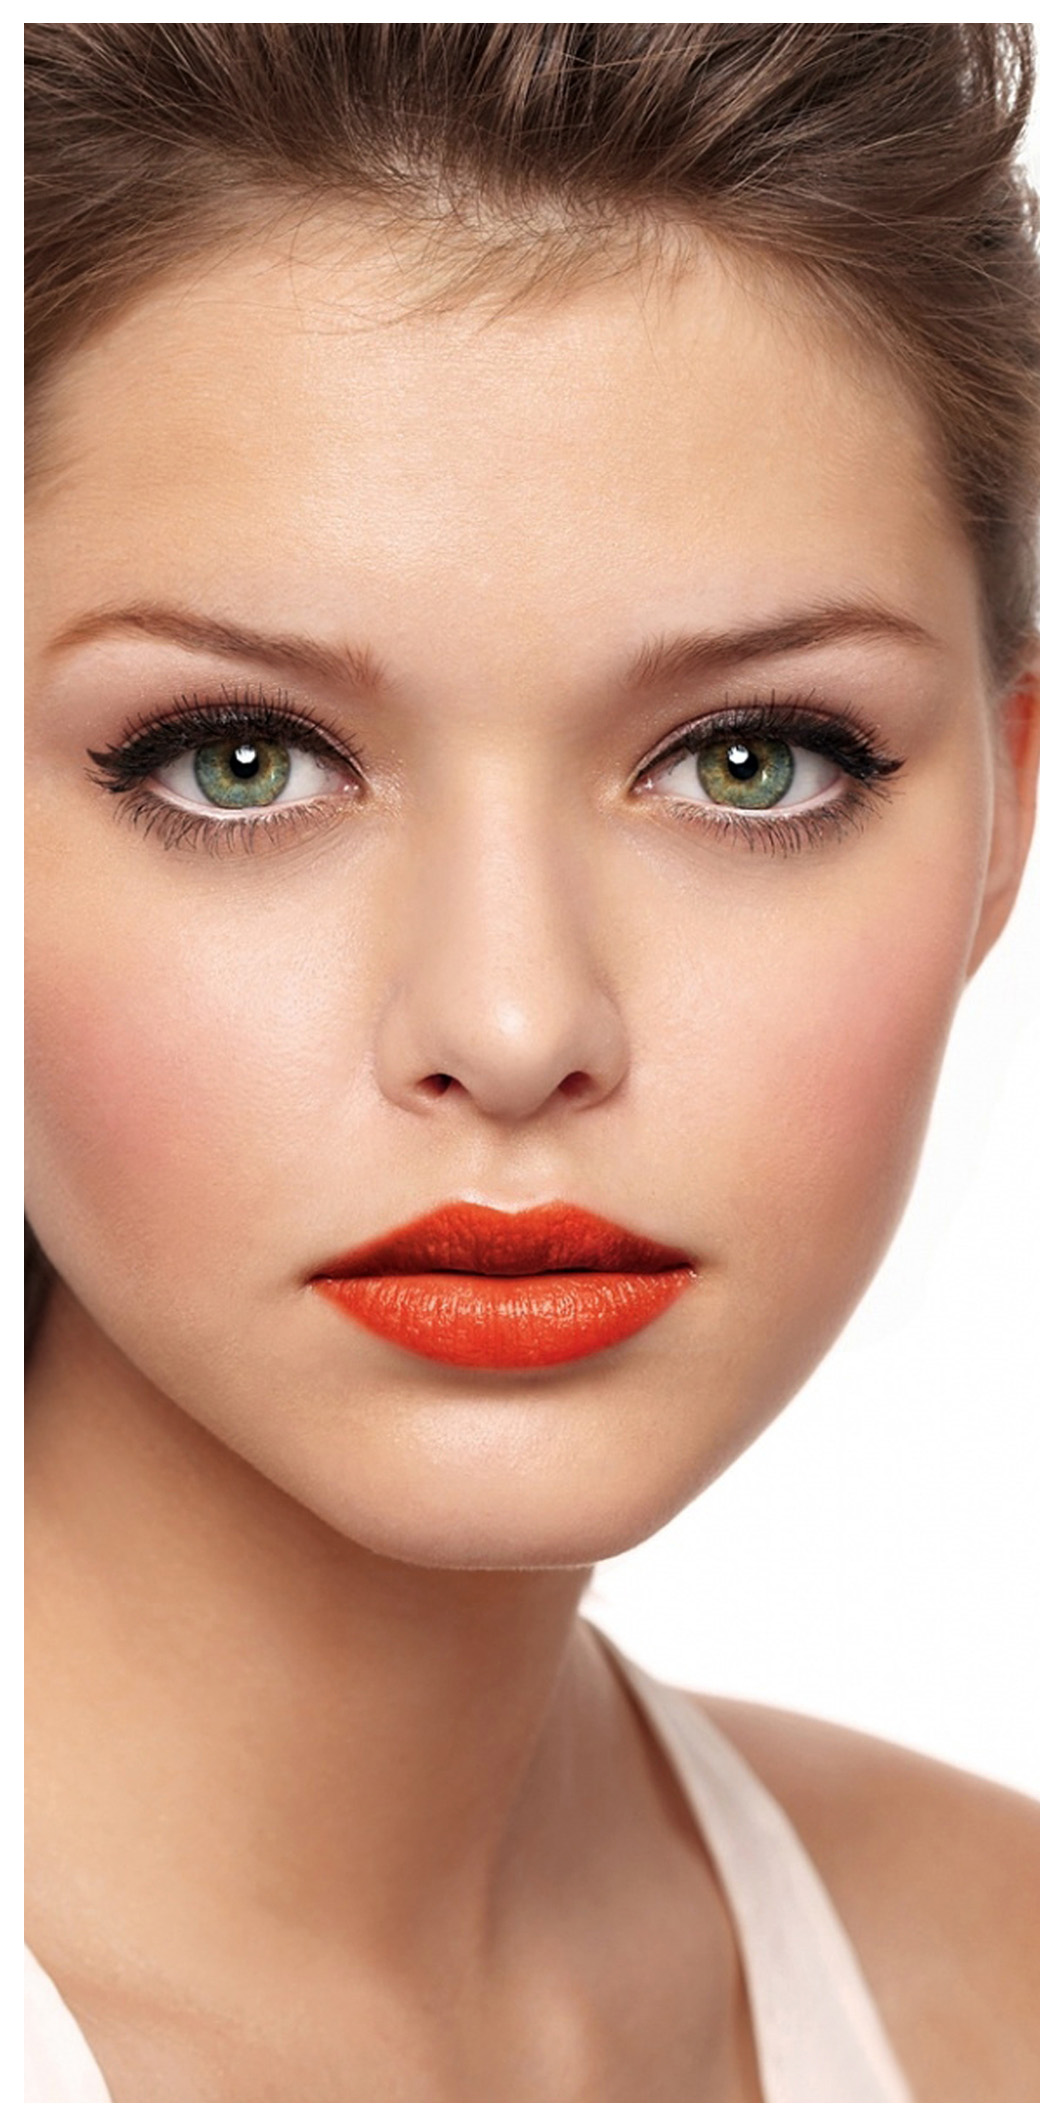 Preferenza Trucco Corallo - Coral Make Up VM35